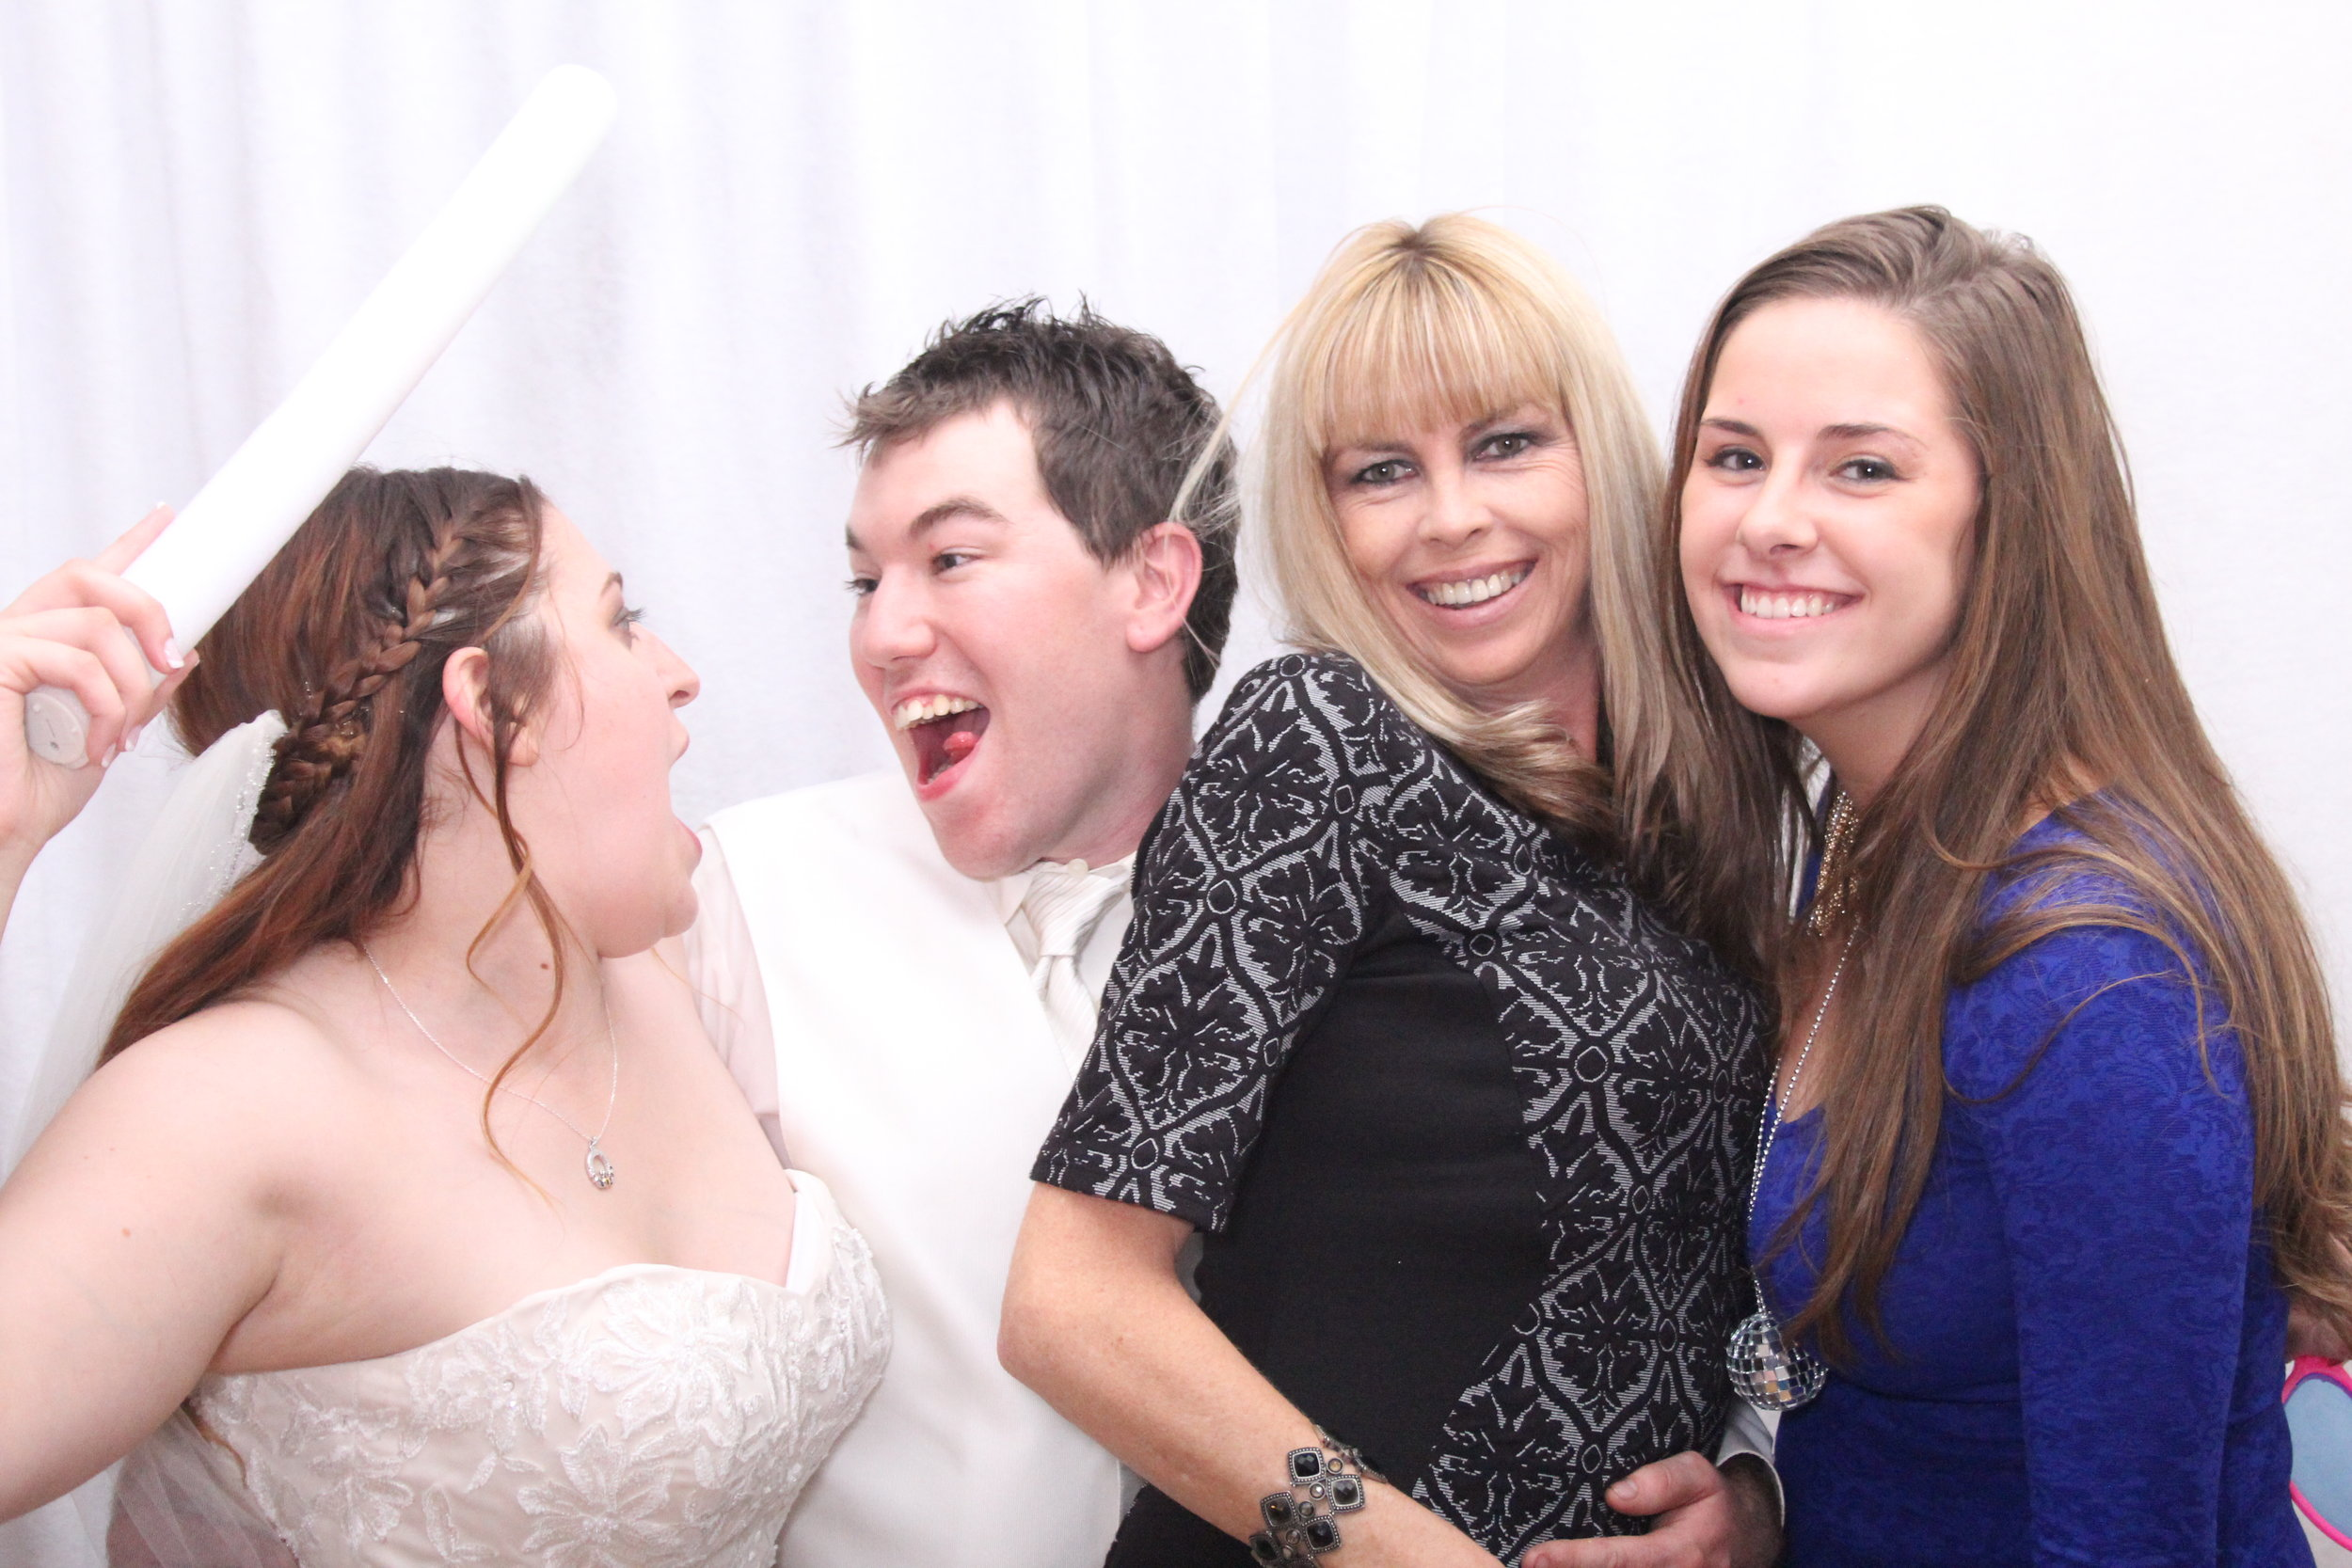 Heather was so much fun at her wedding with Cool Cat, that we actually invited her to join the team!